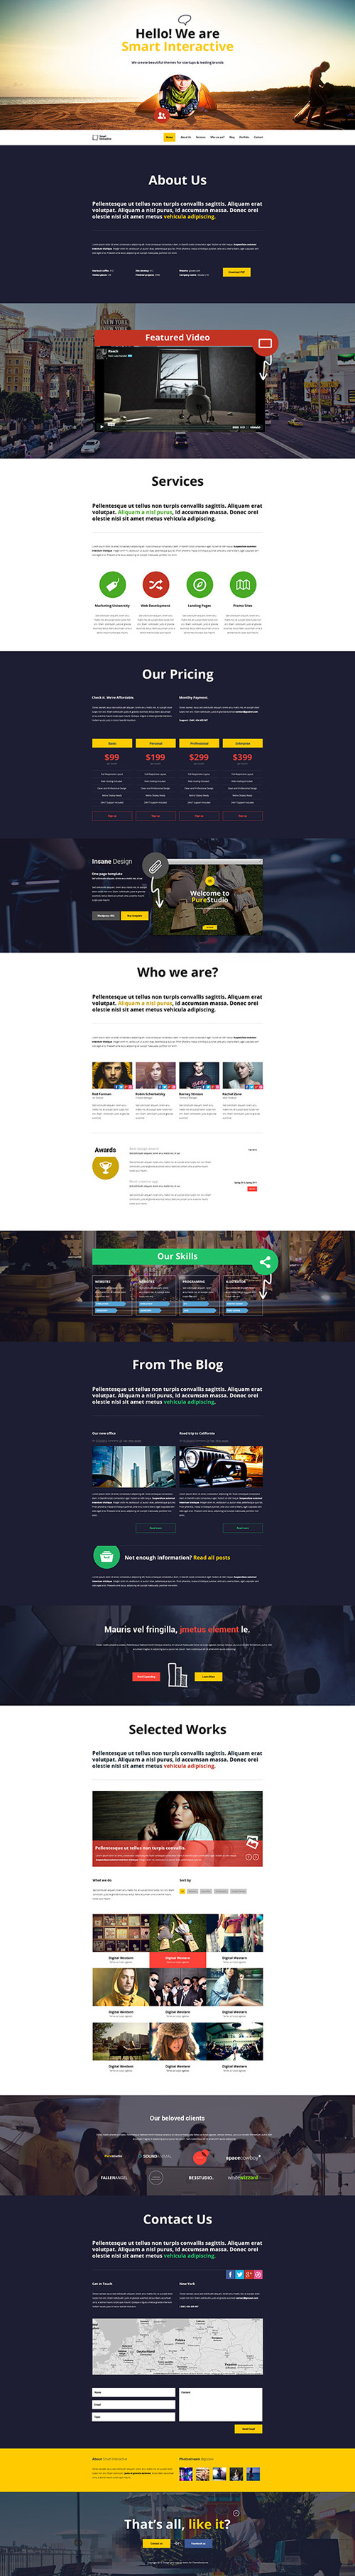 Smart Interactive HTML5 one page creative parallax